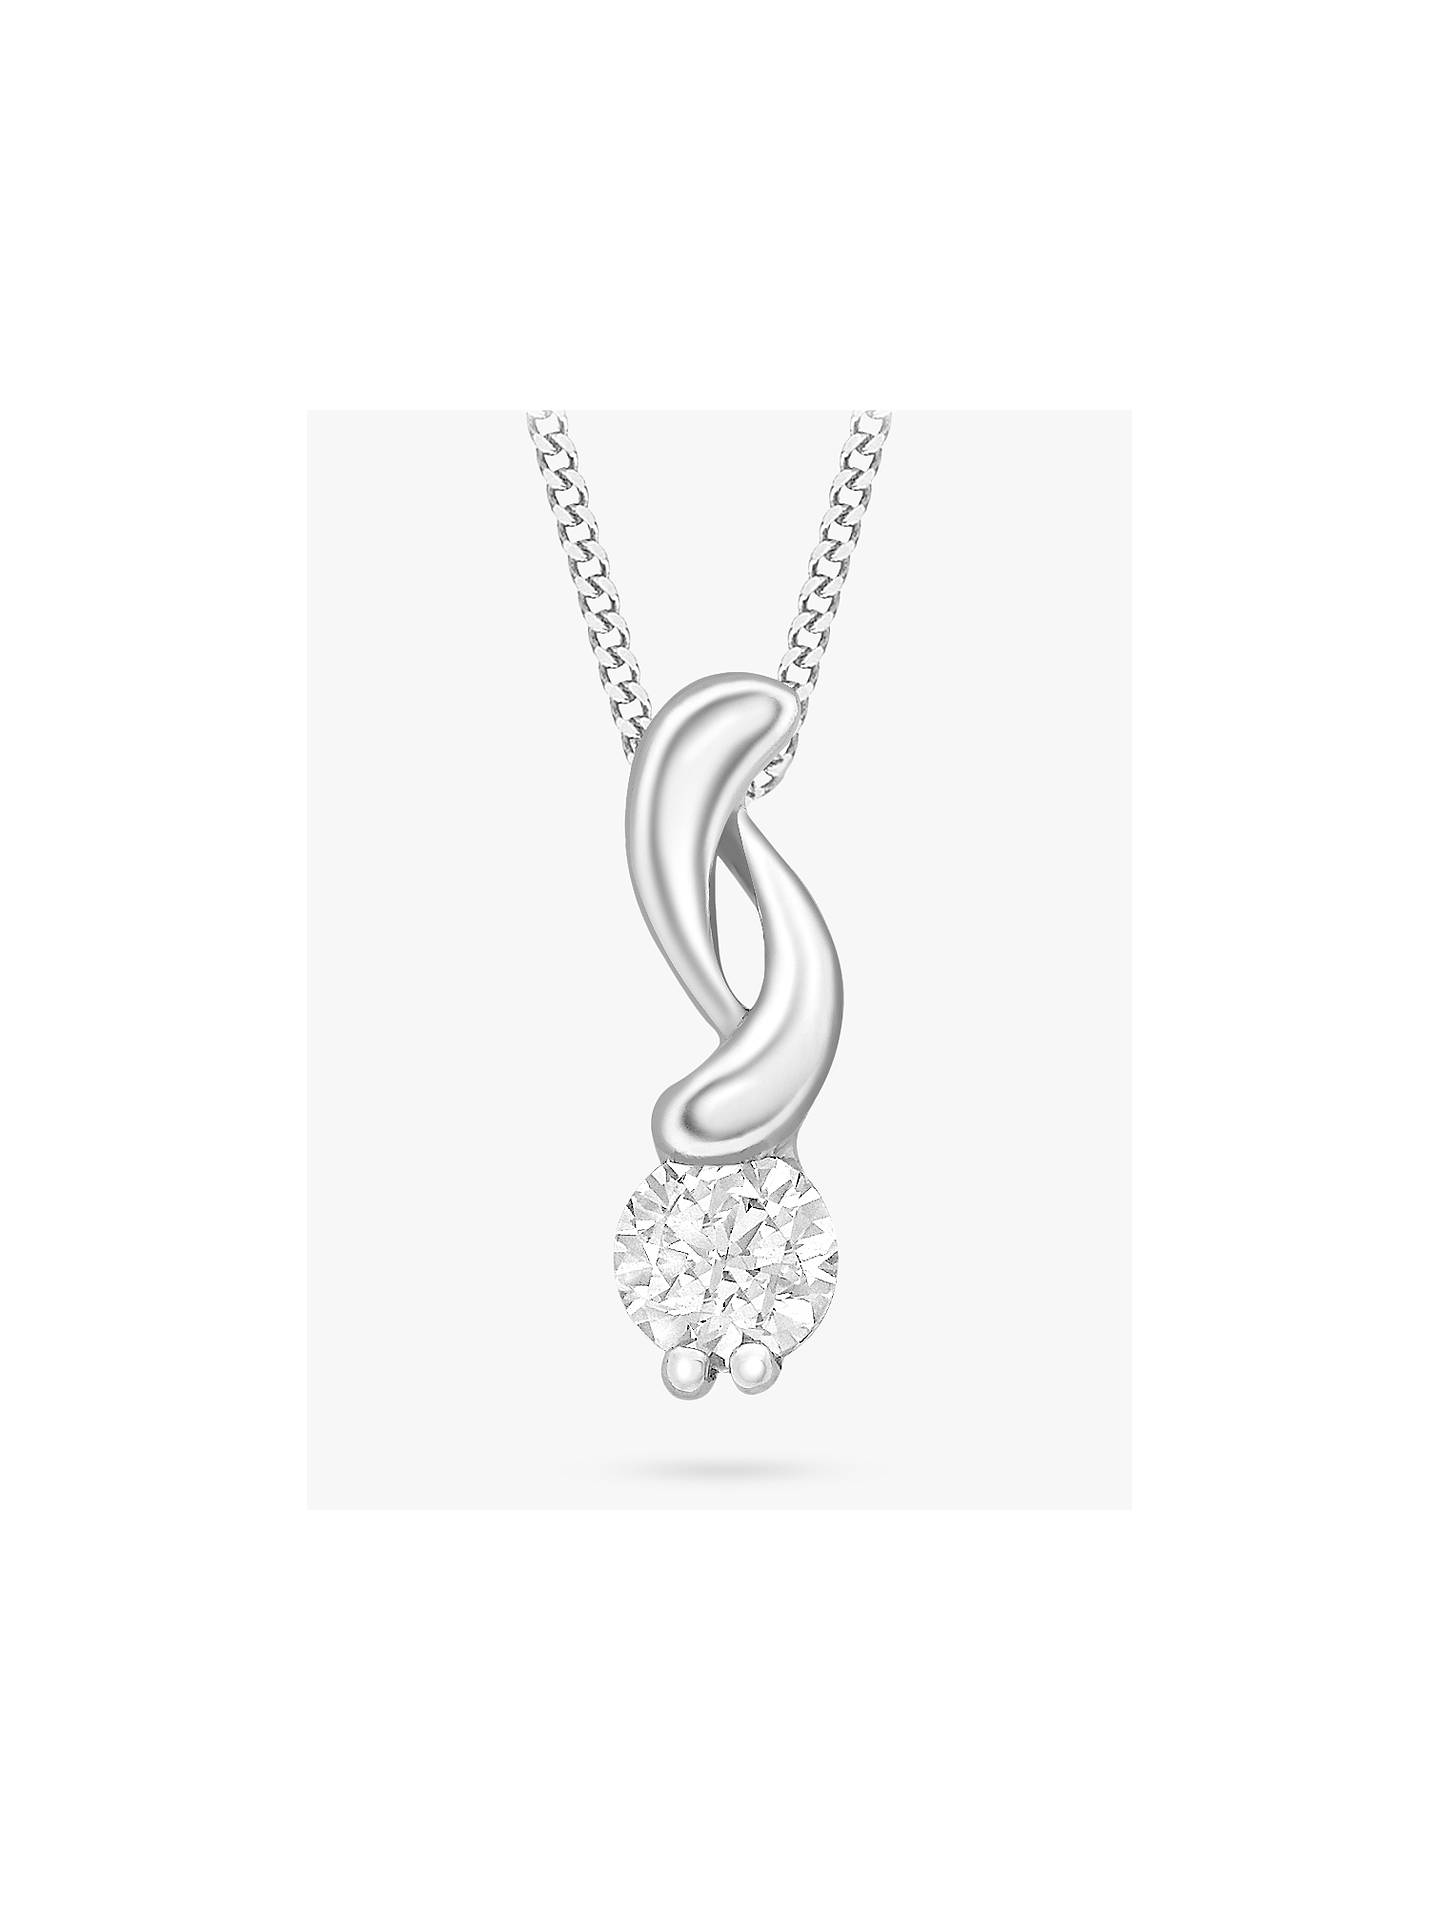 BuyIBB 9ct White Gold Cubic Zirconia Swirl Pendant Necklace Online at johnlewis.com